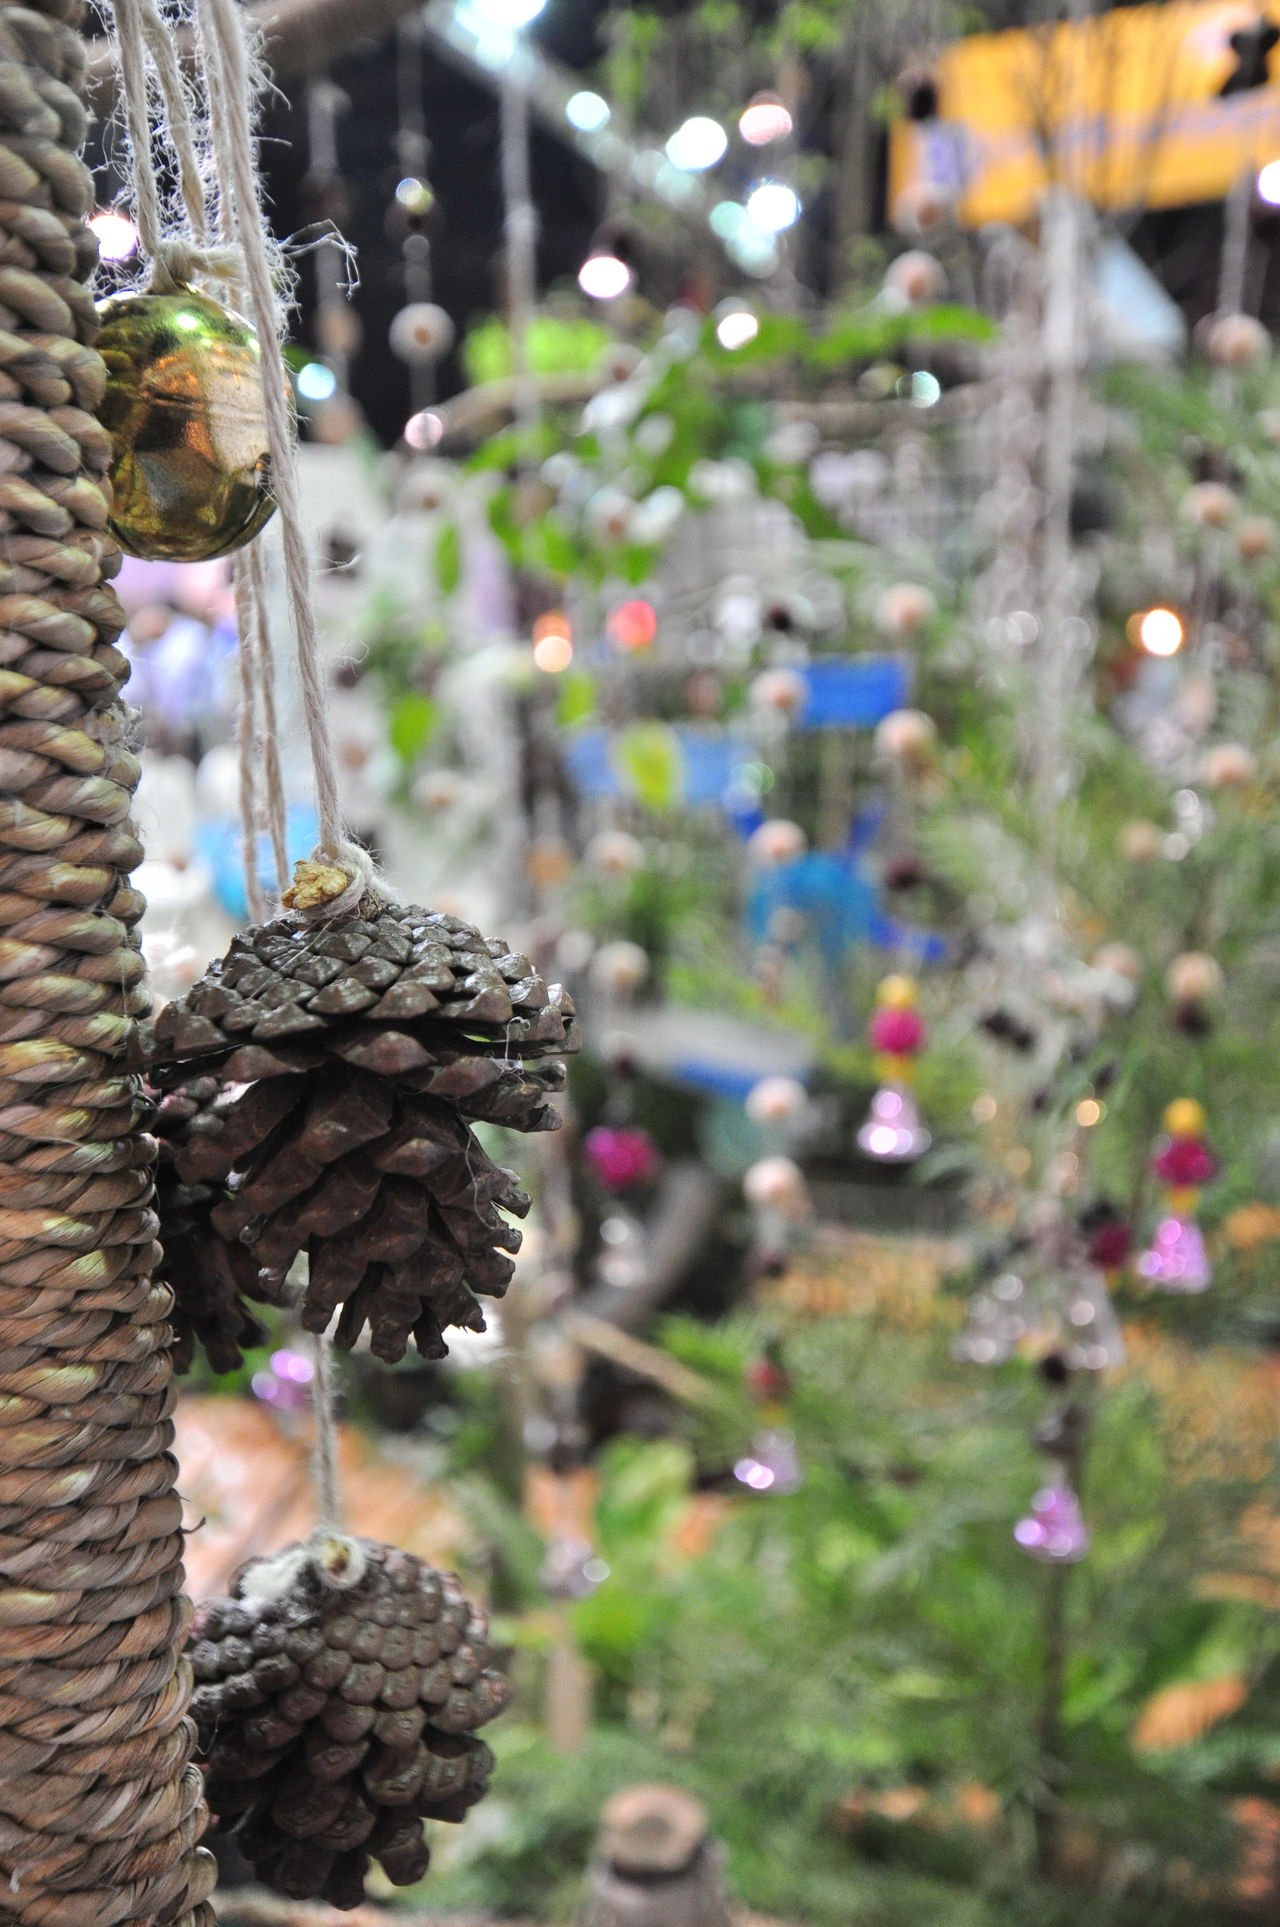 Hanging garden decorations are made with dried pine cones. Adorn Beautiful Blind Branch Close-up Day Decoration Focus On Foreground Freshness Garden Group Hanging Light Nature No People Outdoors Pine Cones Plant Reflections Ropes